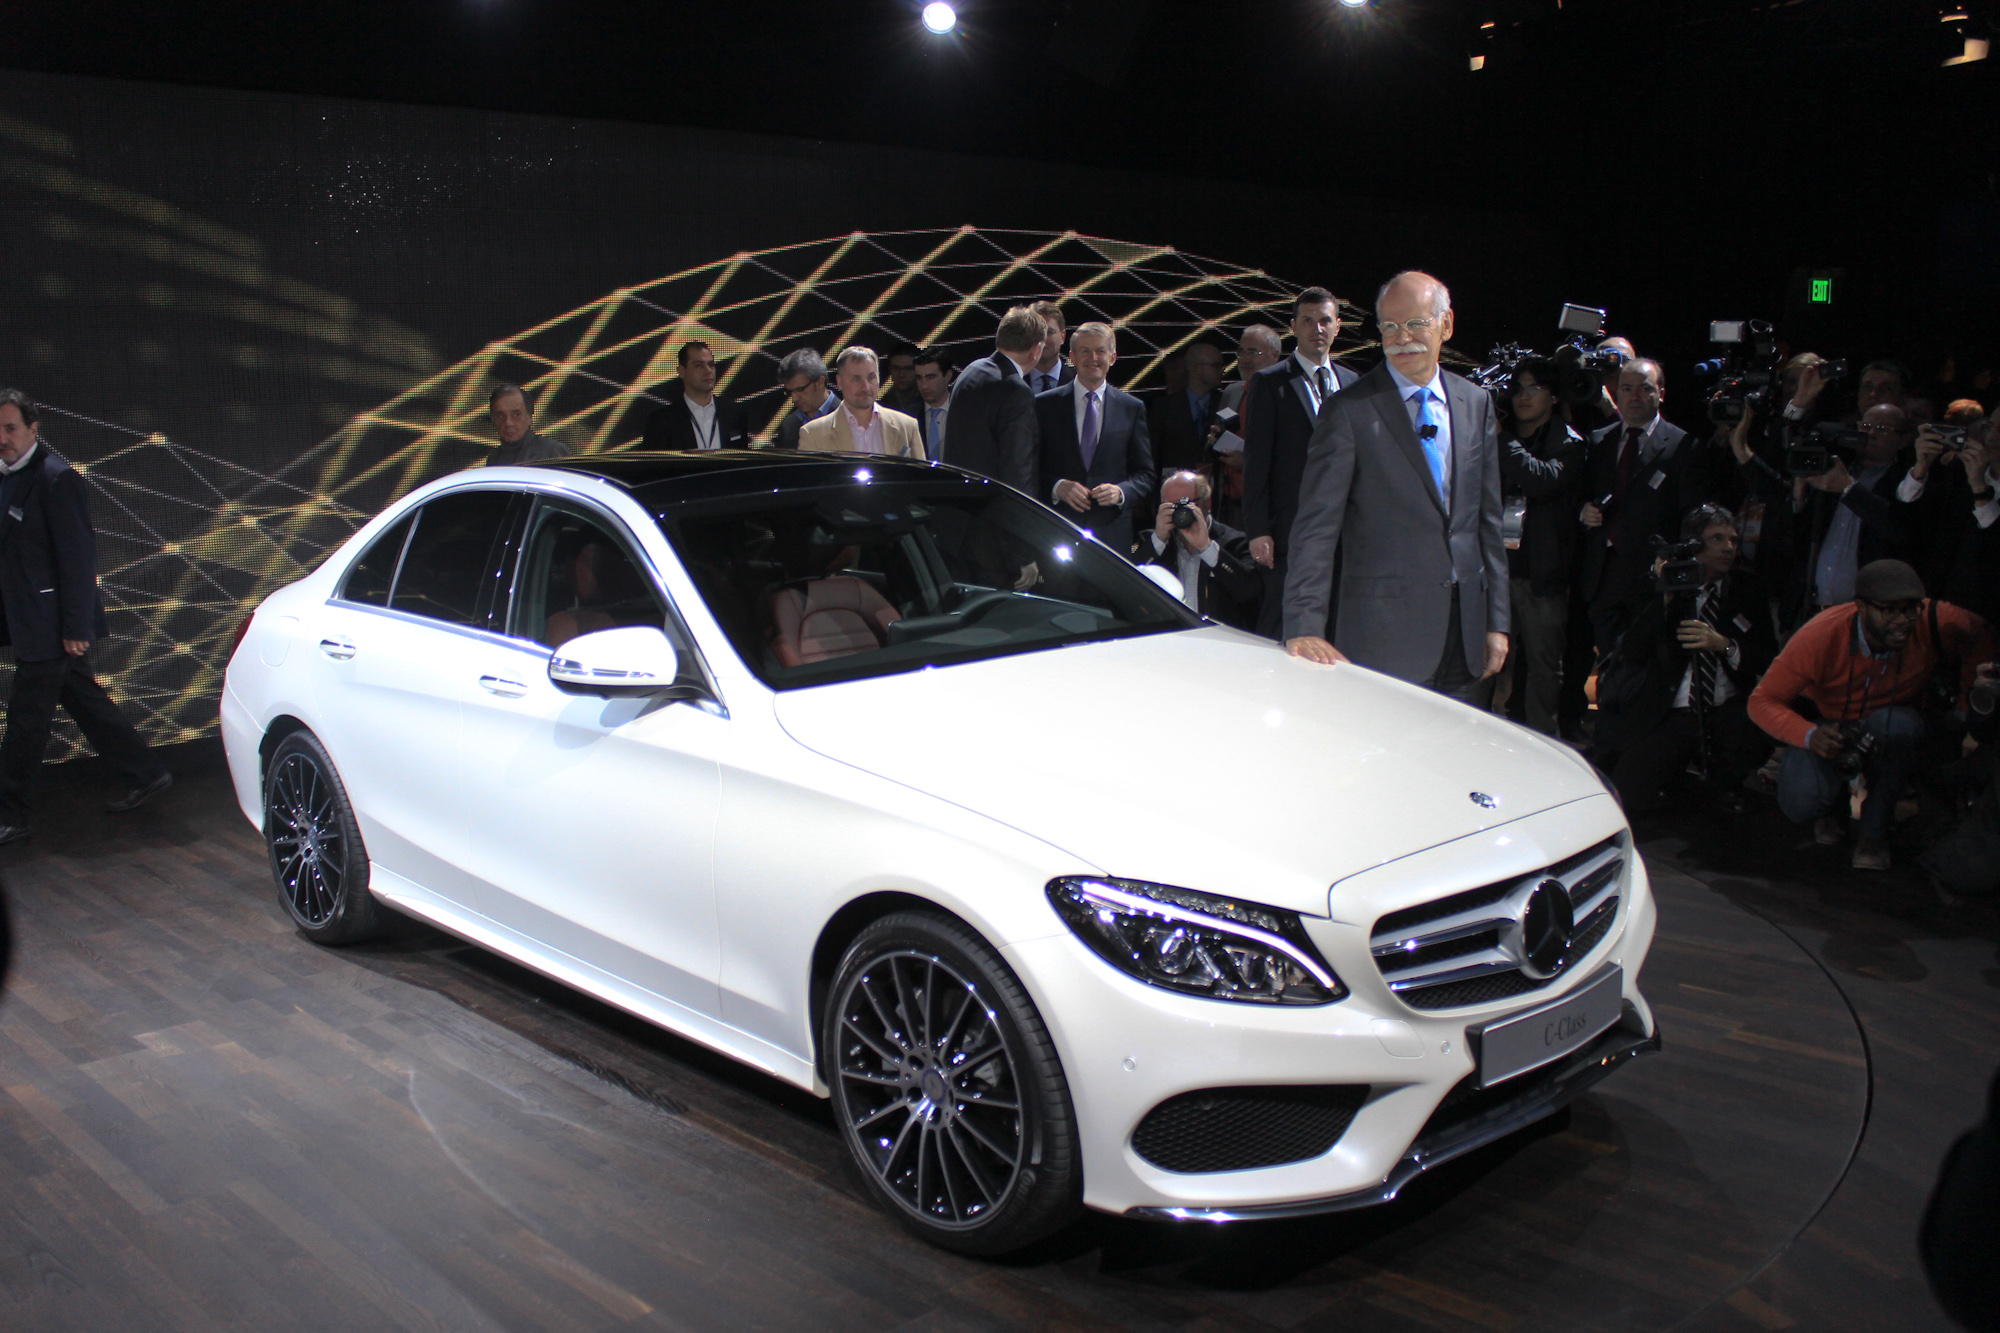 2015 mercedes benz c class 2014 detroit auto show preview - Mercedes car show ...